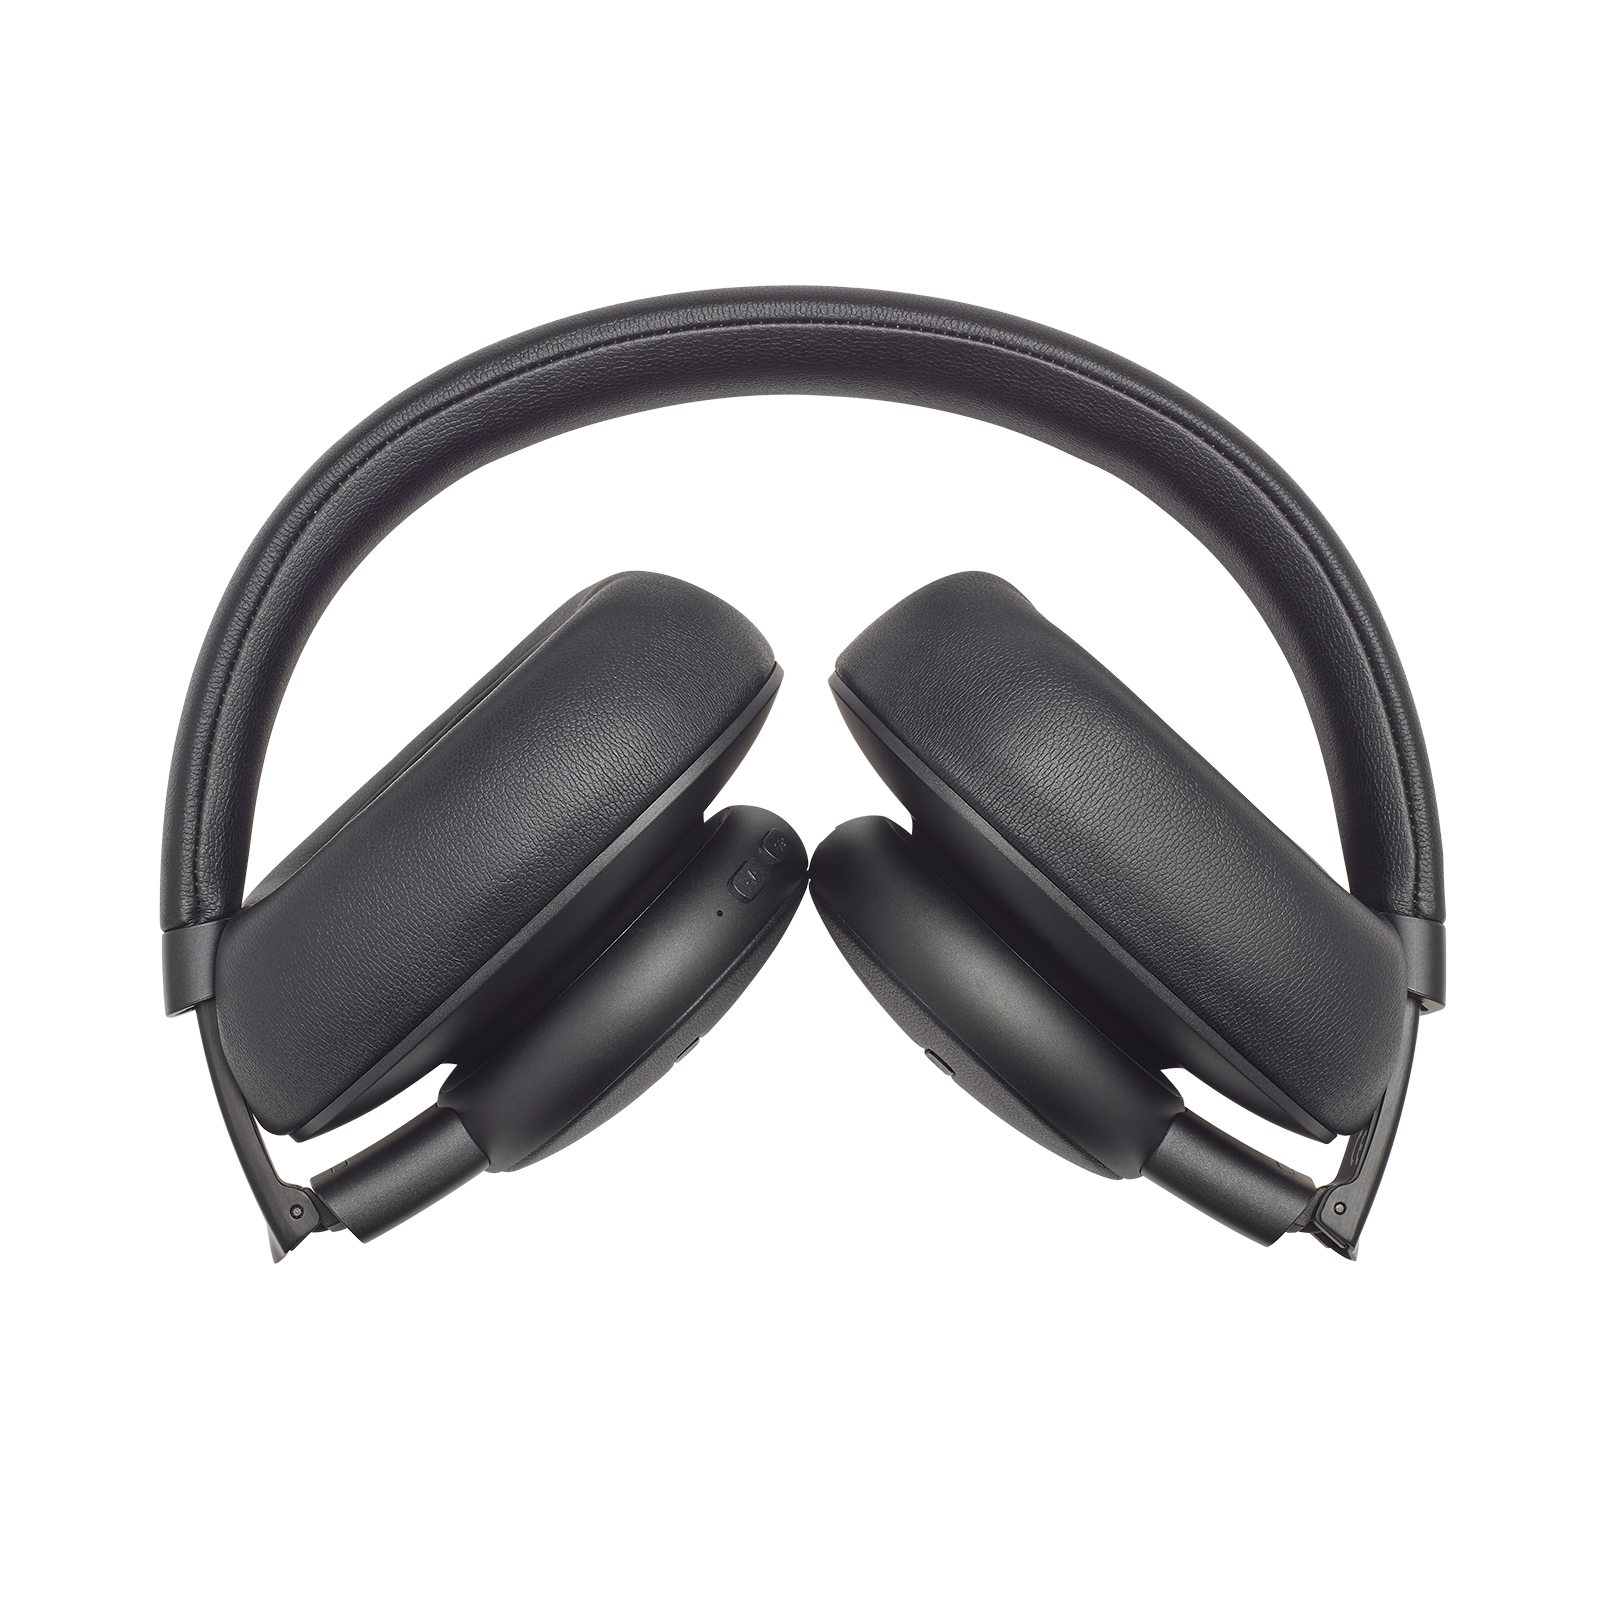 Harman Kardon FLY ANC - Black - Wireless Over-Ear NC Headphones - Detailshot 7